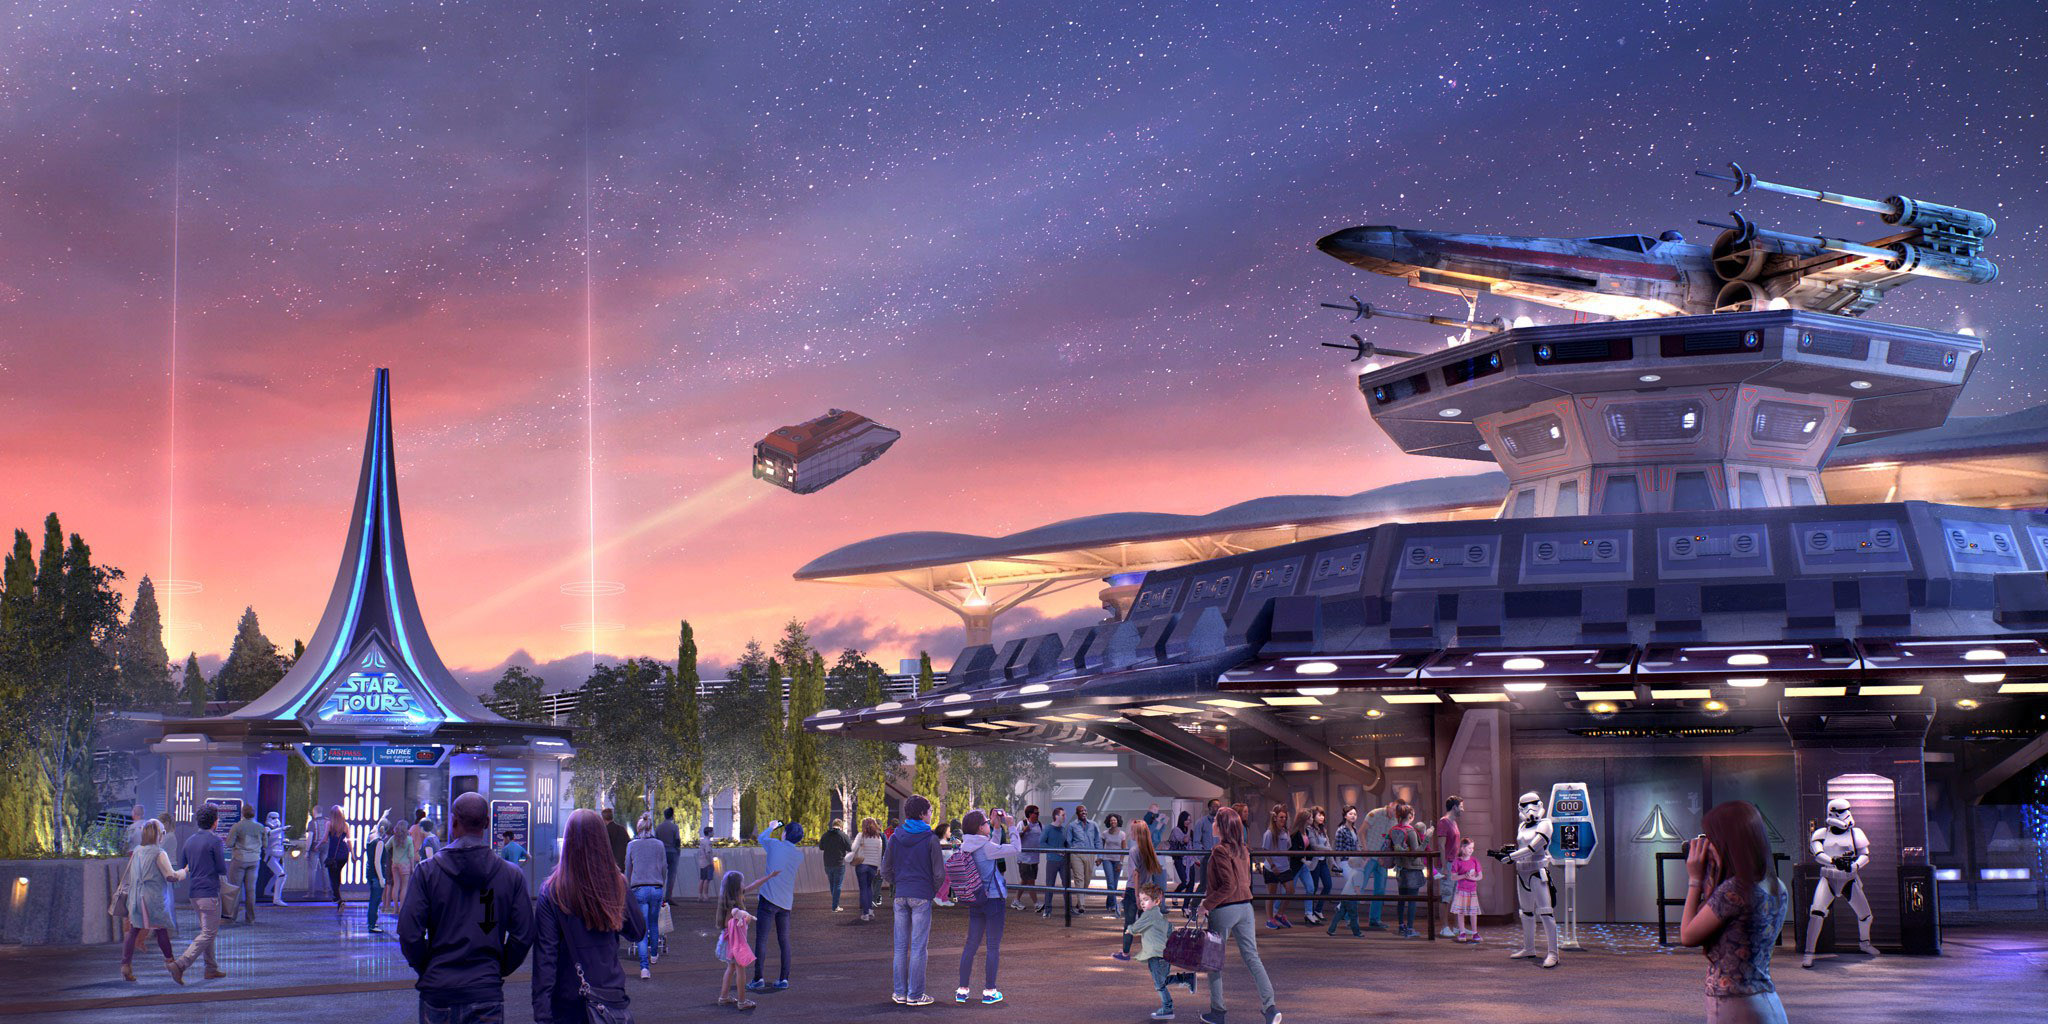 Star Tours 2 soft-opens to Cast Members in Paris